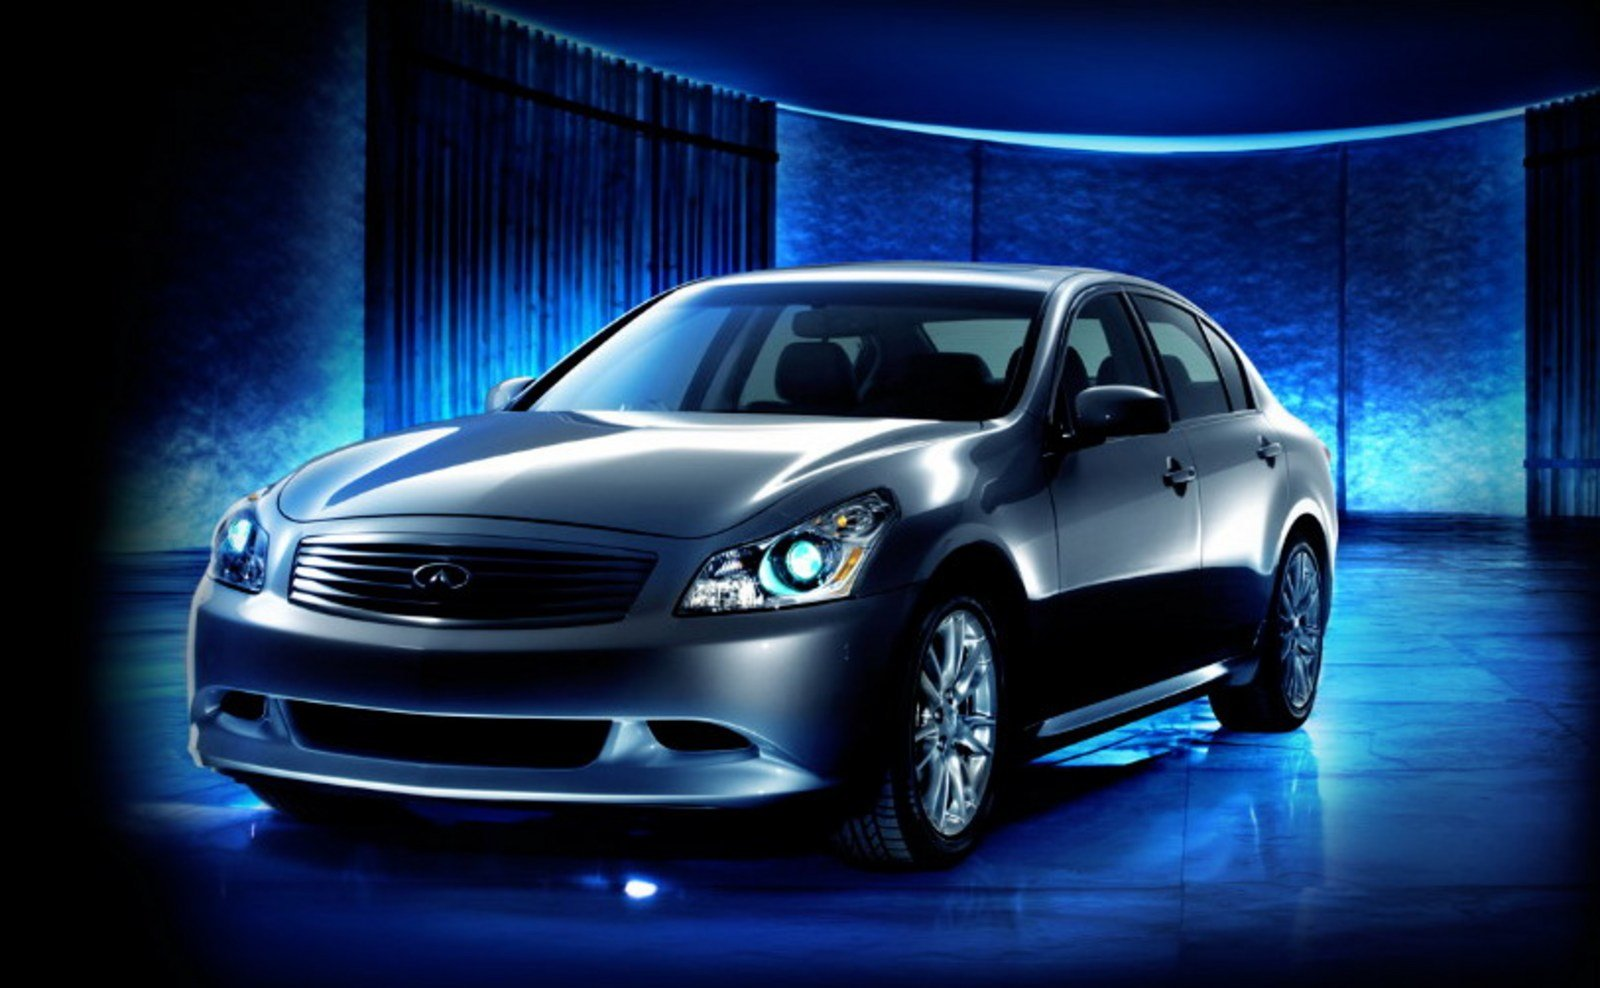 hight resolution of 2008 infiniti g35 sedan pricing announced